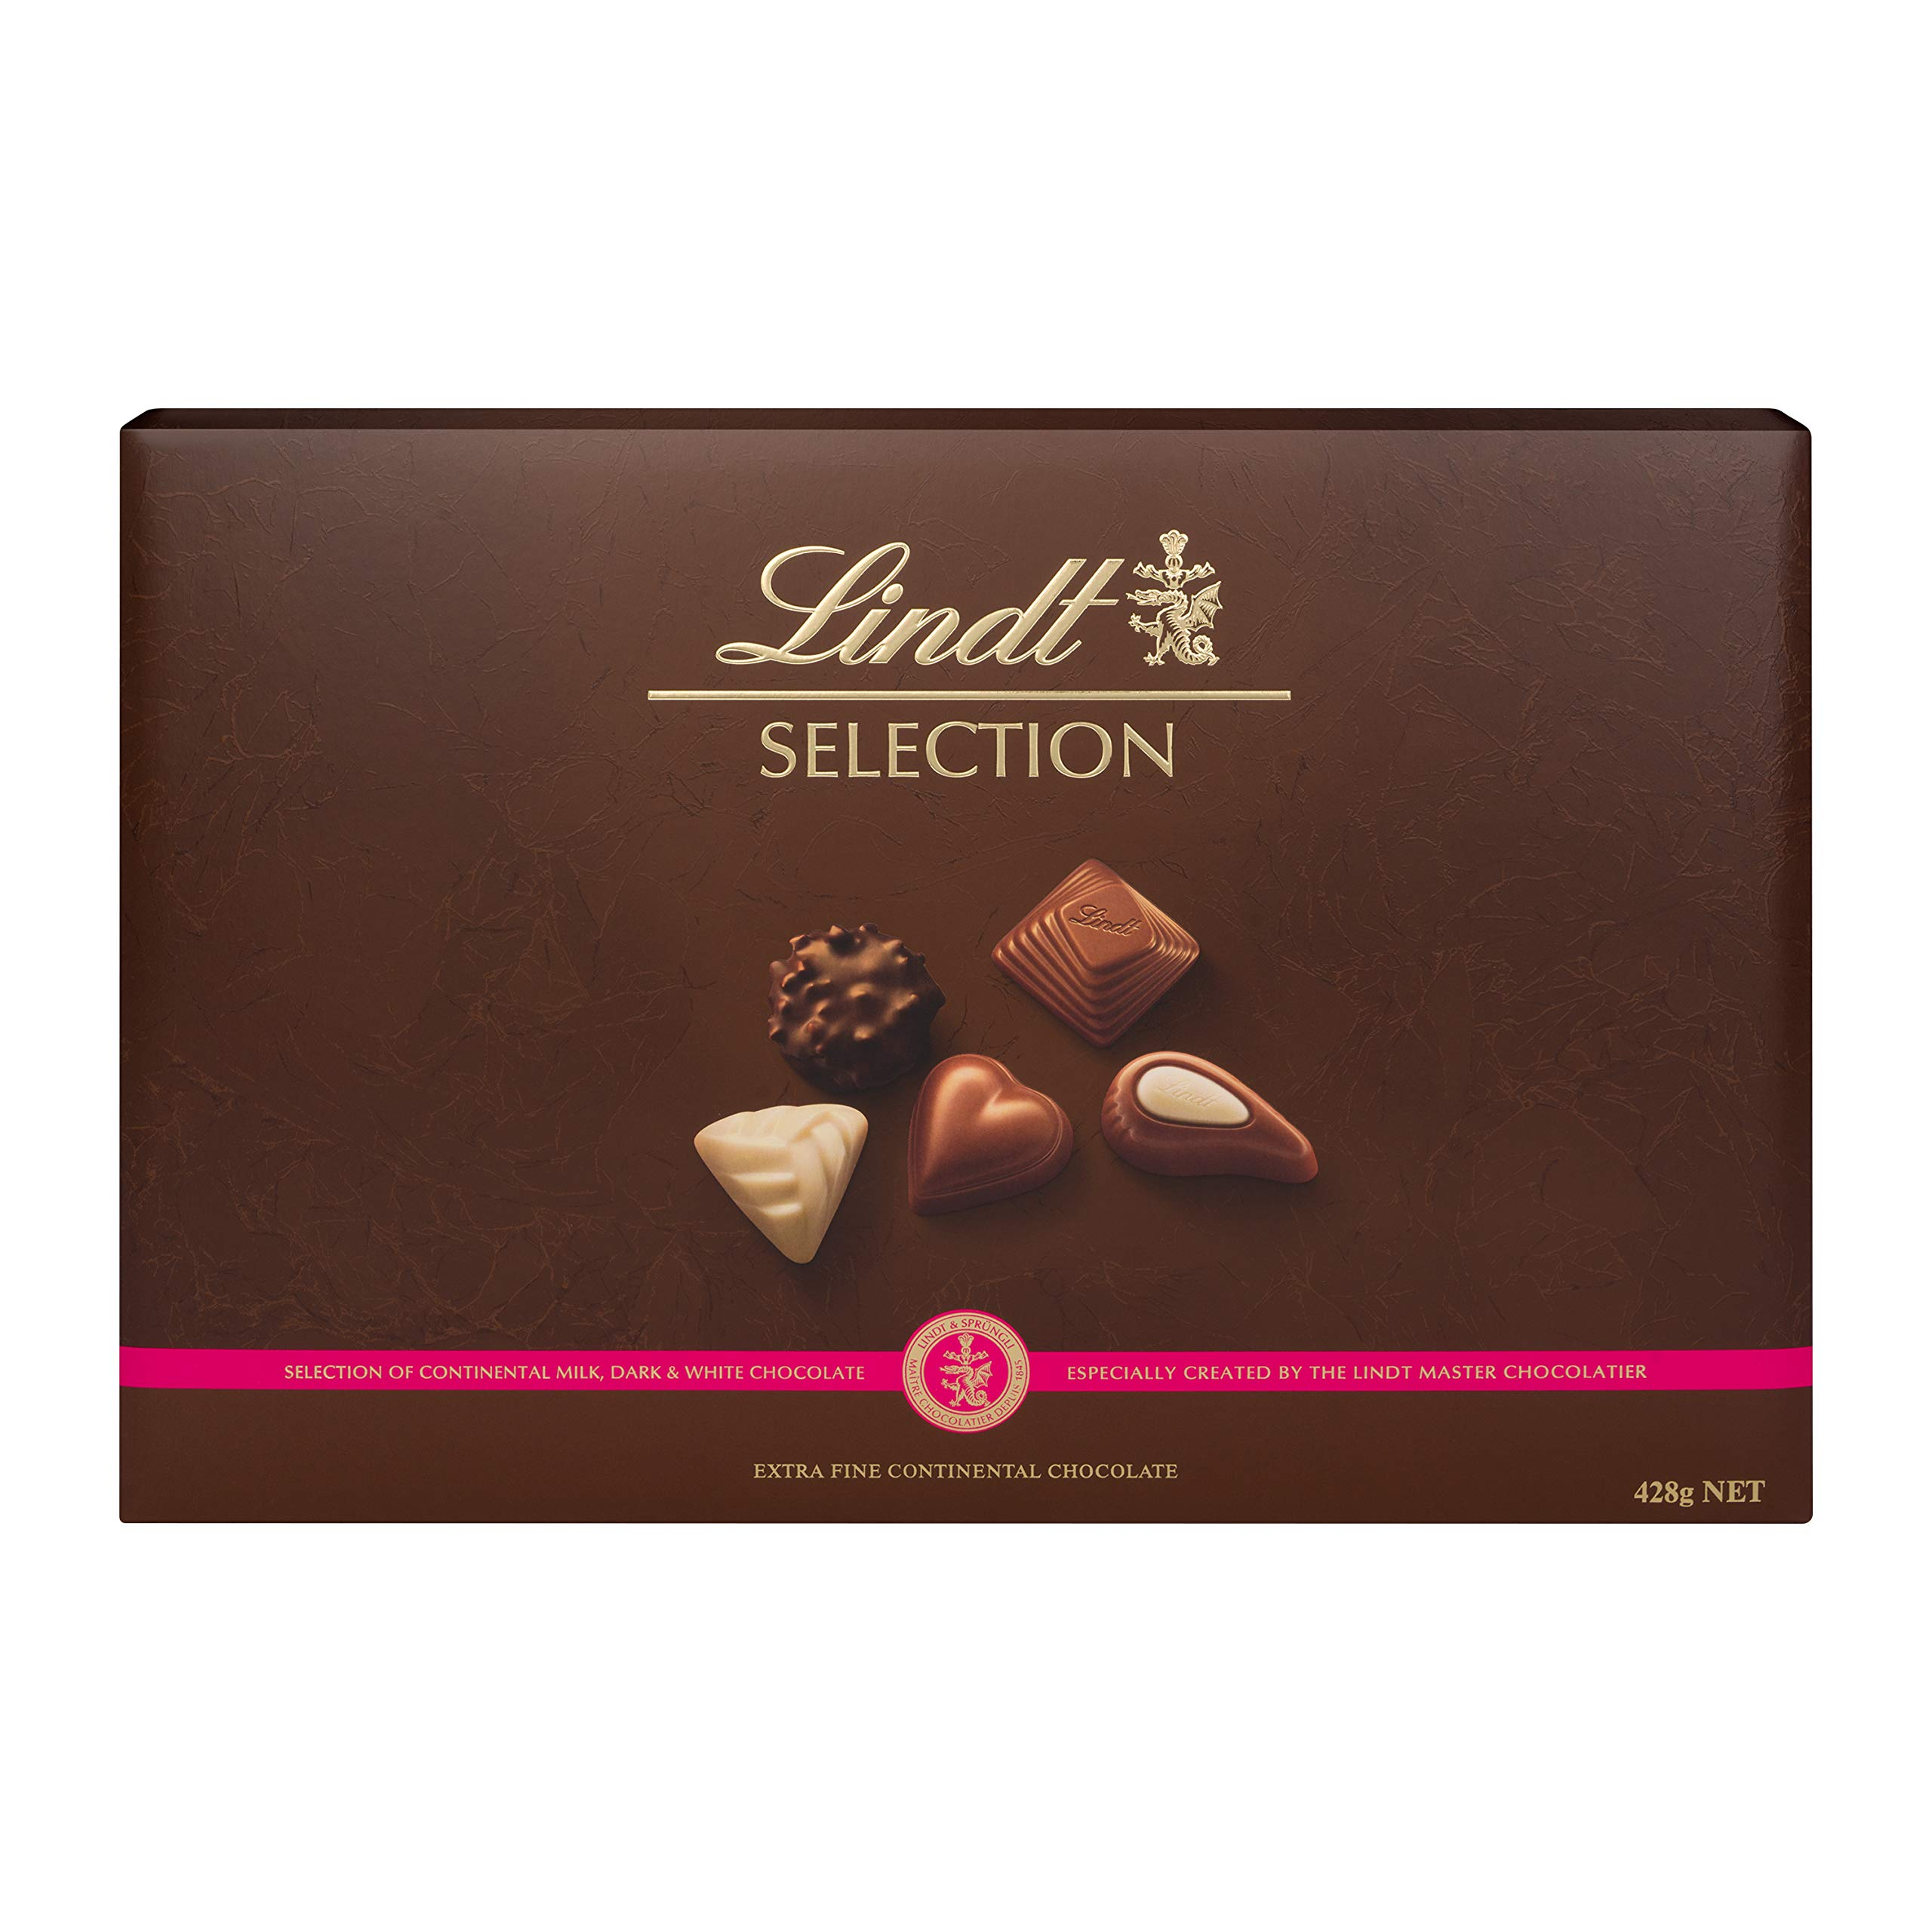 Lindt Selection Chocolate Box - 40 Pralines, 428 g - The Perfect Gift of Milk, White and Dark Chocolate